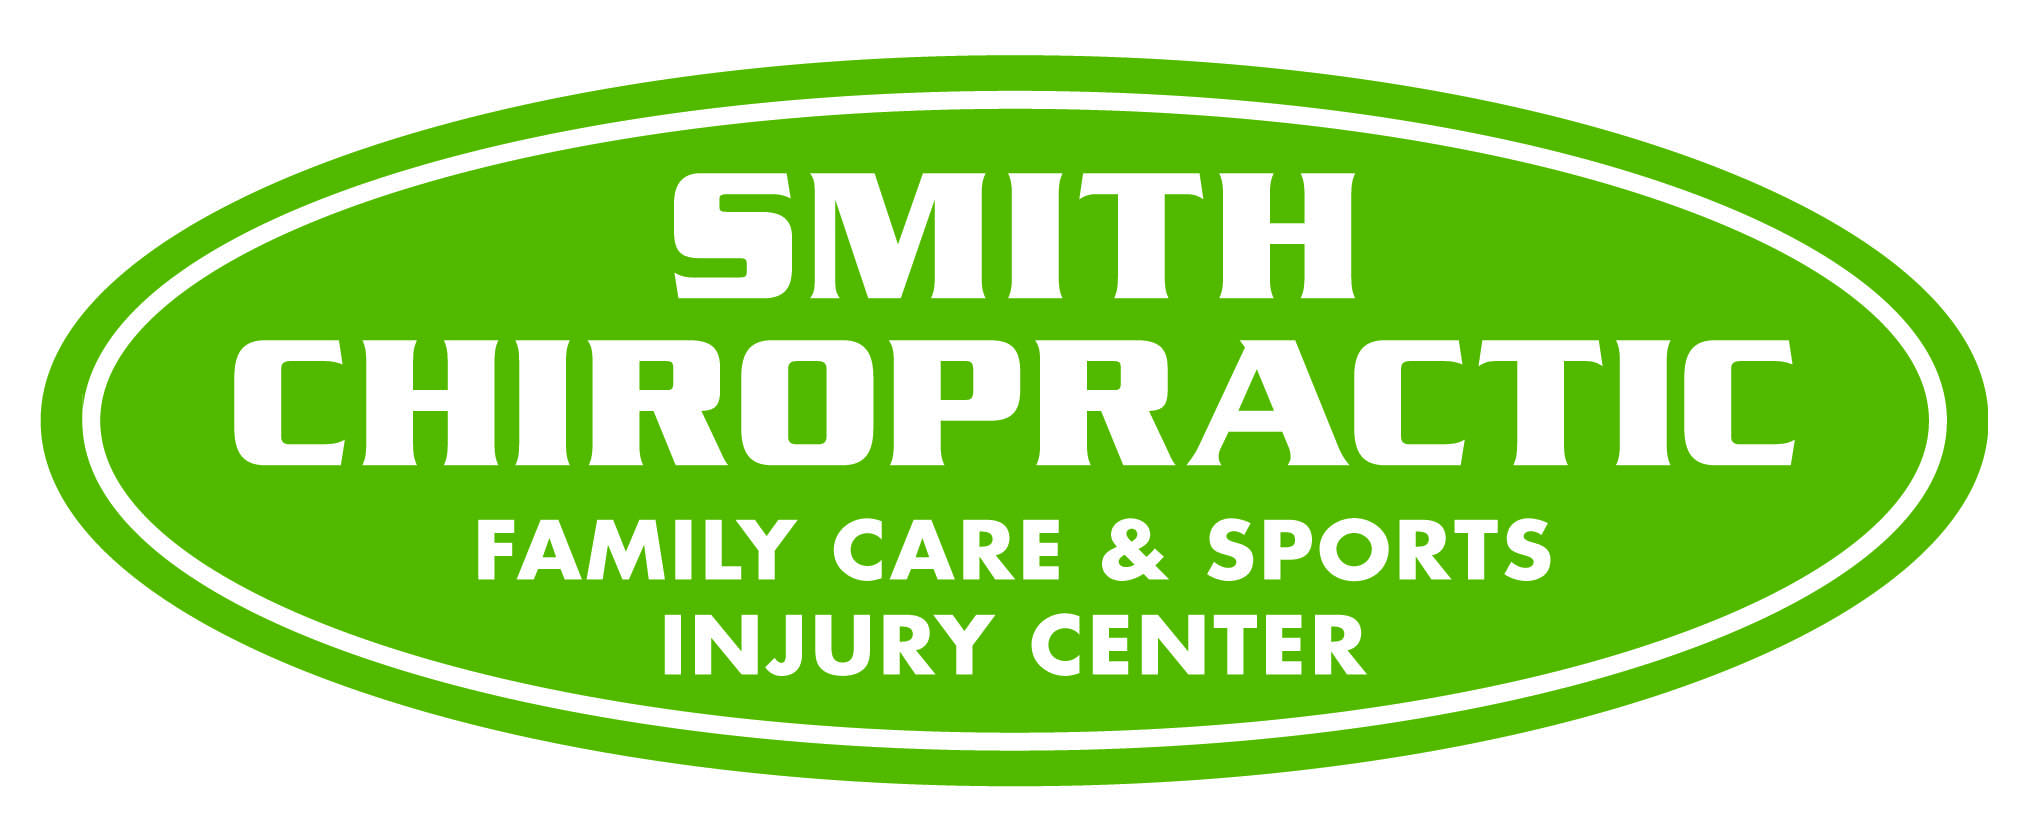 Smith Chiropractic Family Care & Sports Injury Center